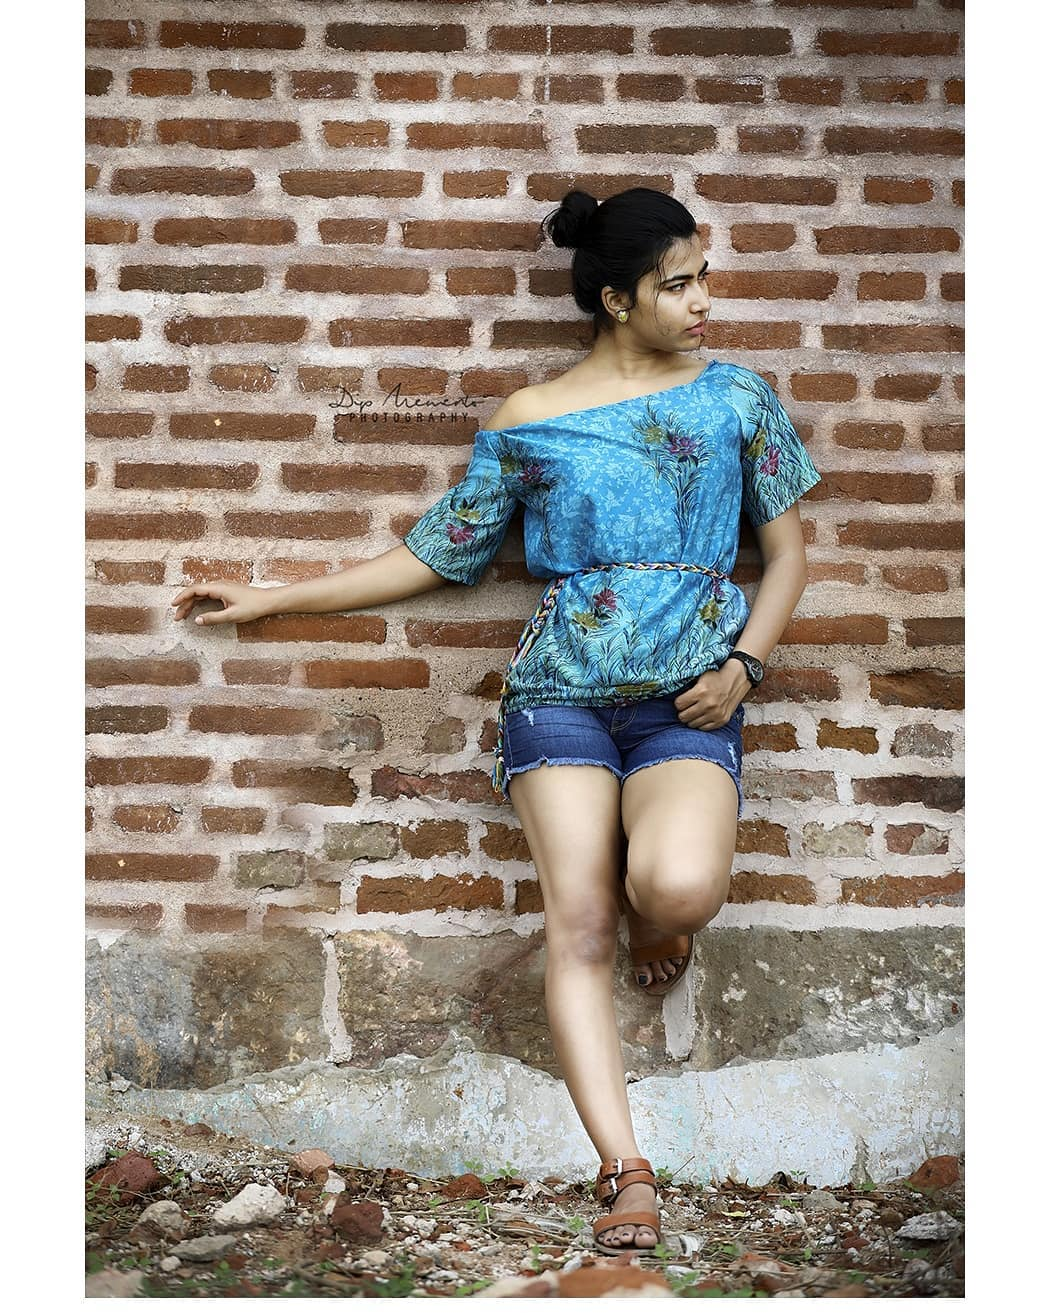 Growing in myself is the best remedy I've ever known! . _._._._._._._._._._._._._._._._._._._._. PC 📸:- @dip_memento_photography In Frame:- @komalpatel_16  Garments:- craftartale _._._._._._._._._._._._._._._._._._._._. ⚠️ Follow @dip_memento_photography -_-_-_-_-_-_-_-_-_-_-_-_-_-_-_-_-_-_ All rights and credits reserved to the respective owner(s) . . FASHION PHOTOGRAPHY FASHION PORTFOLIOS MODEL PHOTOGRAPHY DM FOR SHOOTS, COLLAB PARTNERSHIP. . . #endlessfaces #igpodium_portraits #shutterstock #pixel_ig #pixelart  #theportraitpr0jectject #womenportrait #photographyislife #photographylovers #portrait_planet #agameoftones #9924227745 #portraitfestival #portraits_ig #boudoirinspiration #boudoirphotos #beautyandboudoir #girly_portraits #portraitsofficial #portraitpage #dipmementophotography #portrait_mf #portrait_shots #globe_people #moodyports #majestic_people_ #india_undiscovered #portraitstream #portraitvision